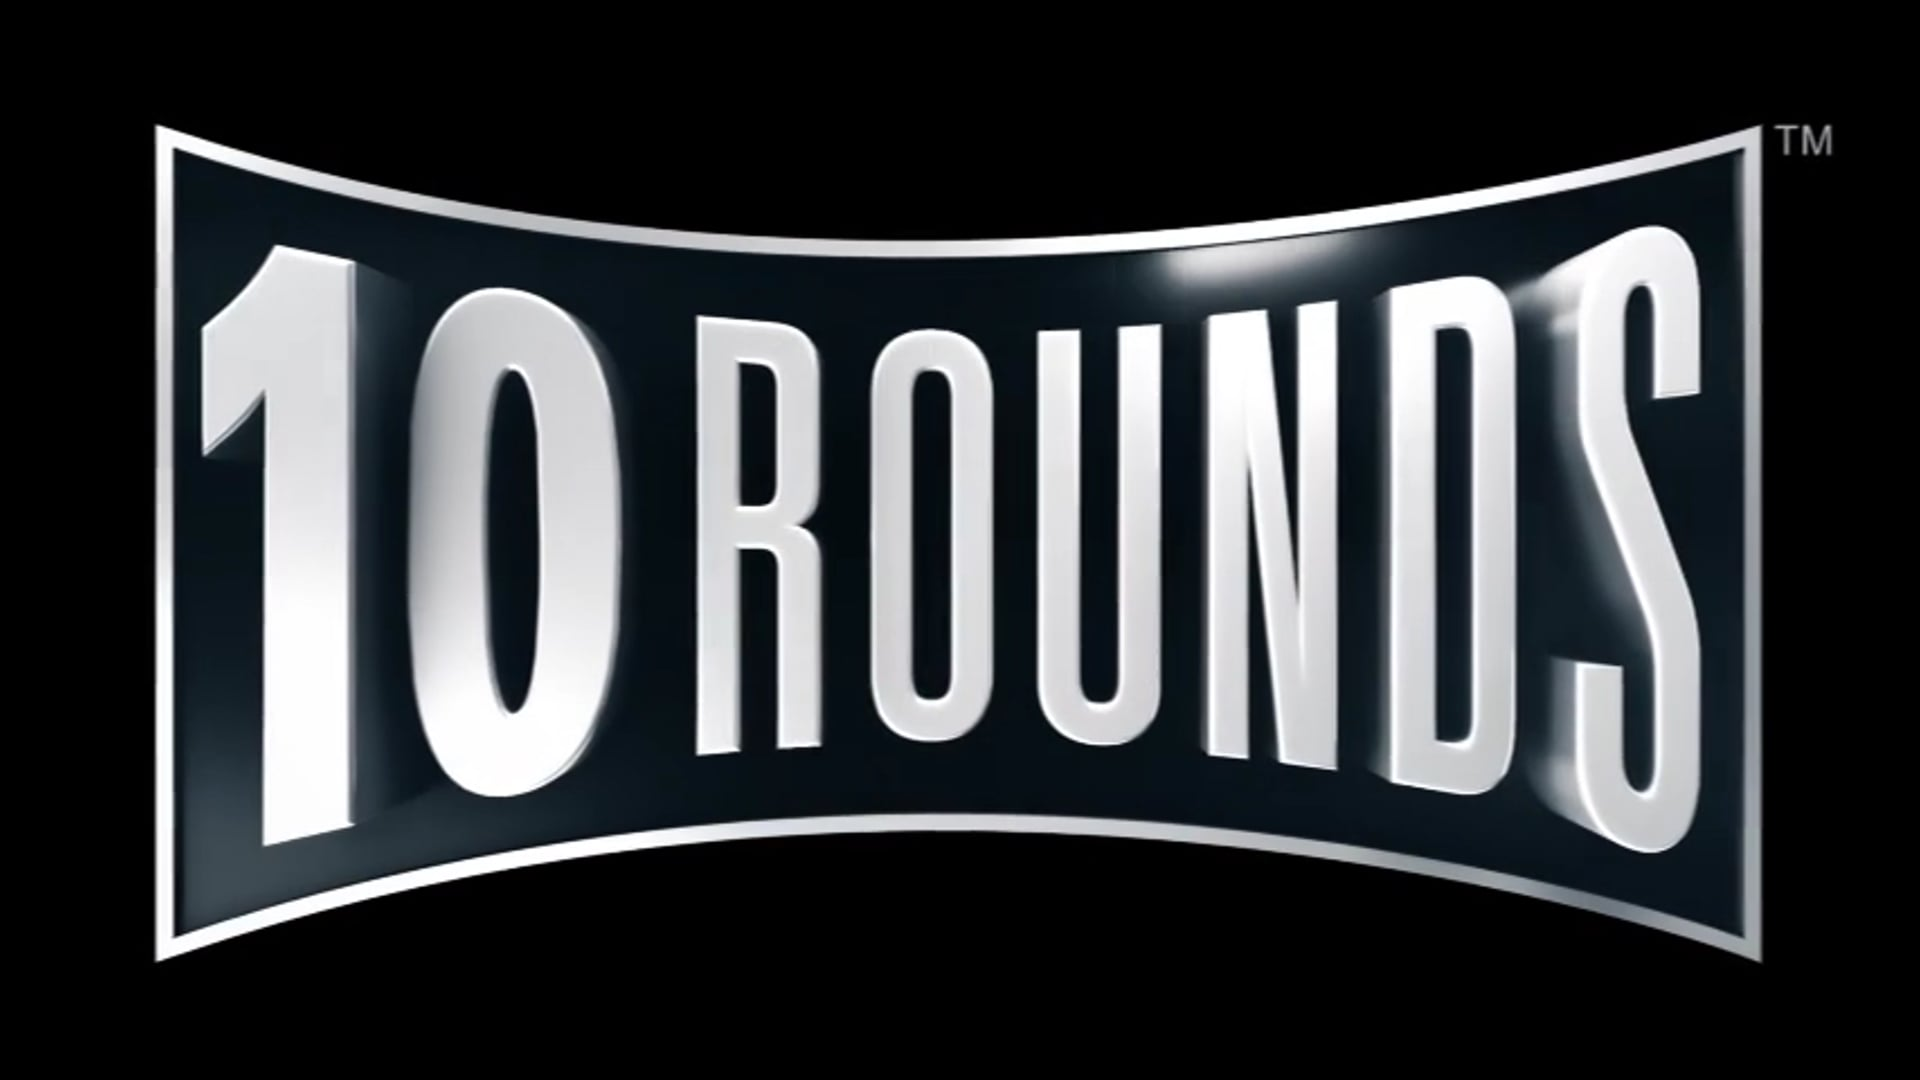 10 Rounds Sample Workout